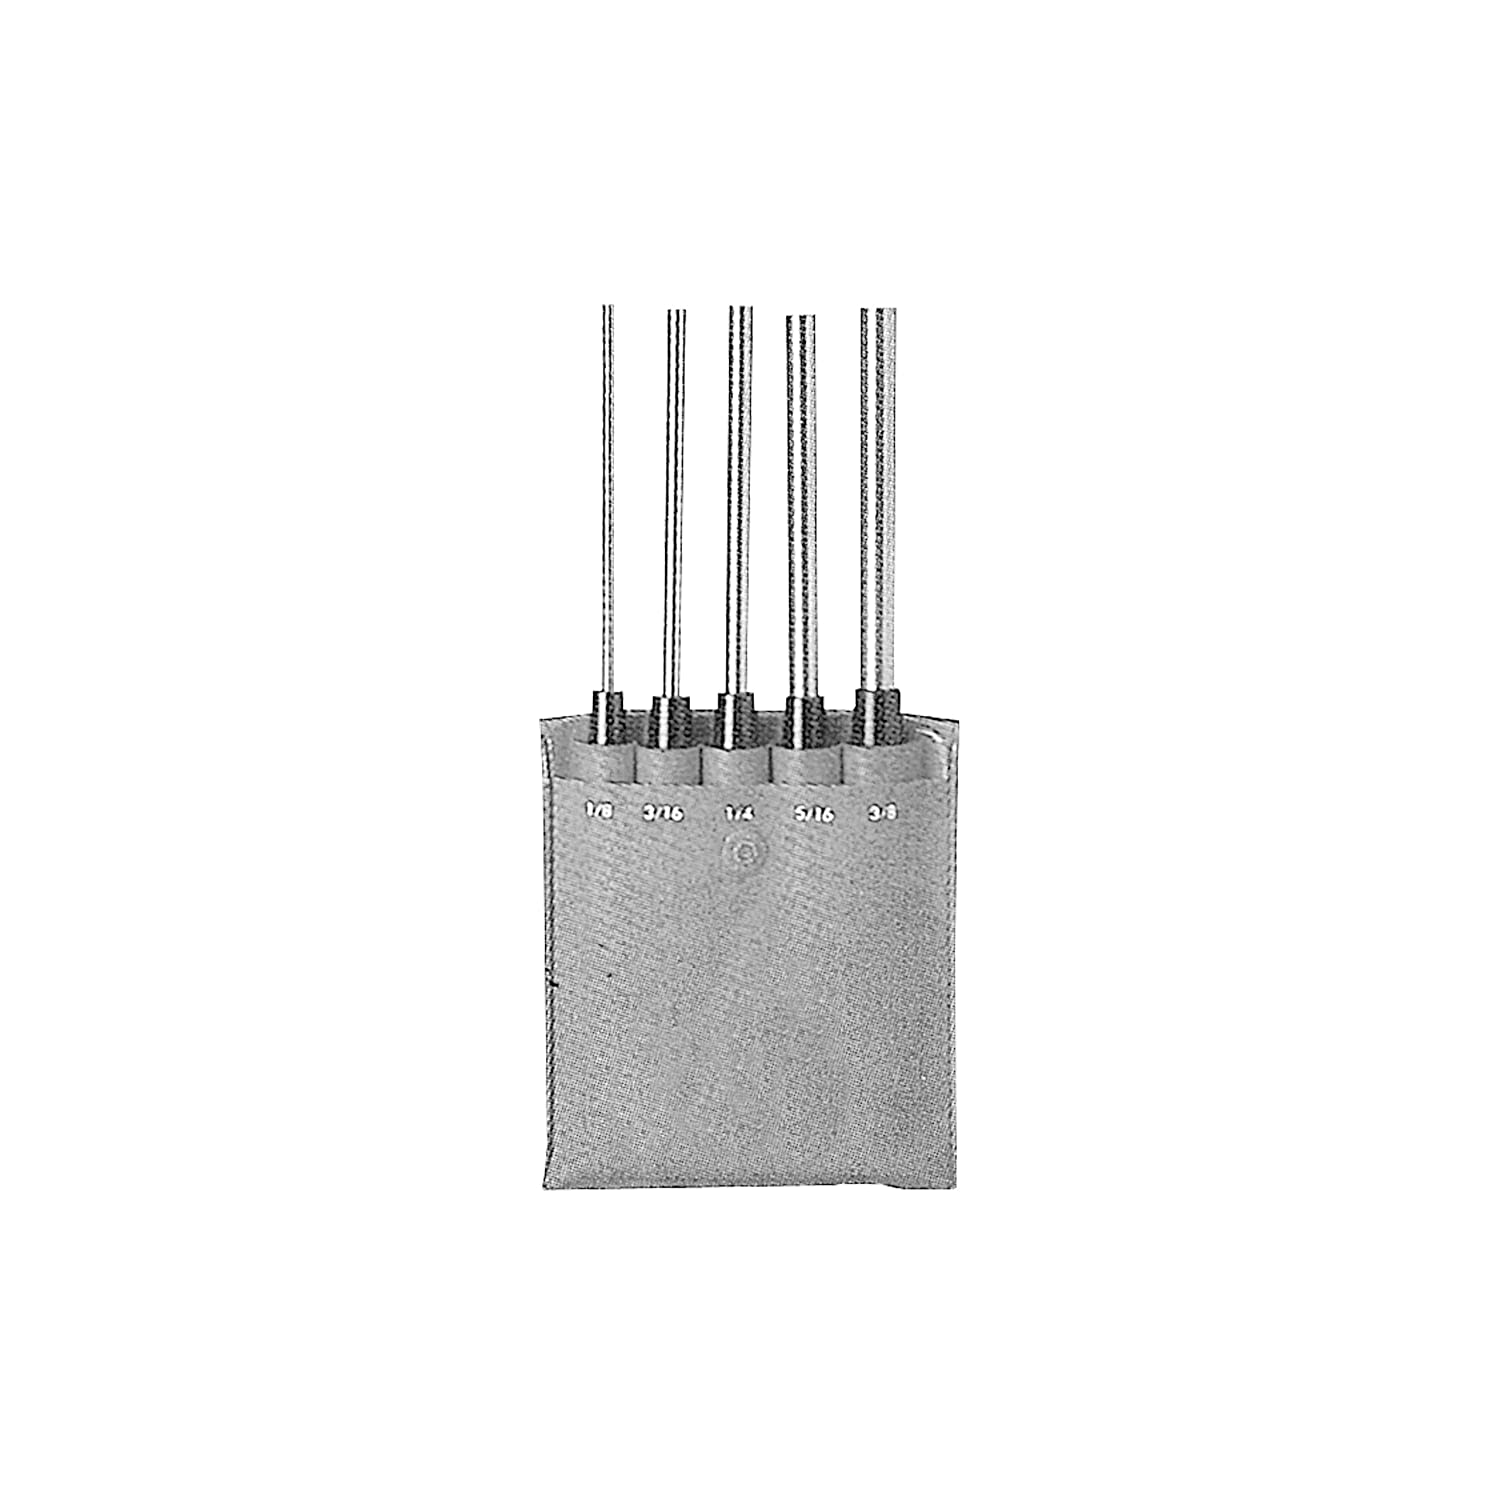 USA 8 Overall Length ABS Import Tools Inc 8 Overall Length HHIP 8600-4104 5 Piece Extra-Long Drive Pin Punch Set with Black Nitrate Finish